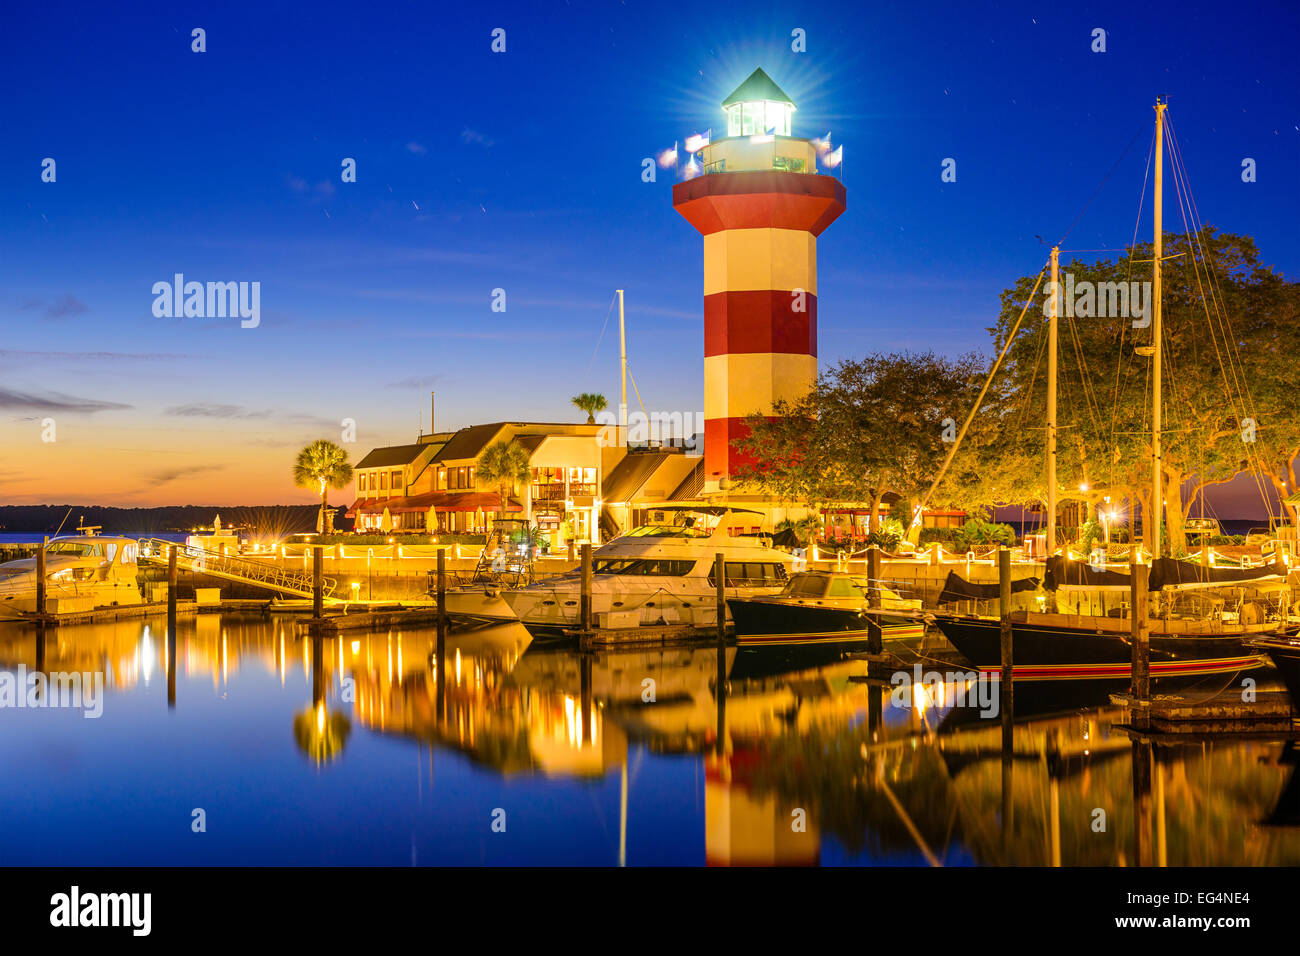 Hilton Head, South Carolina, USA lighthouse. Stock Photo